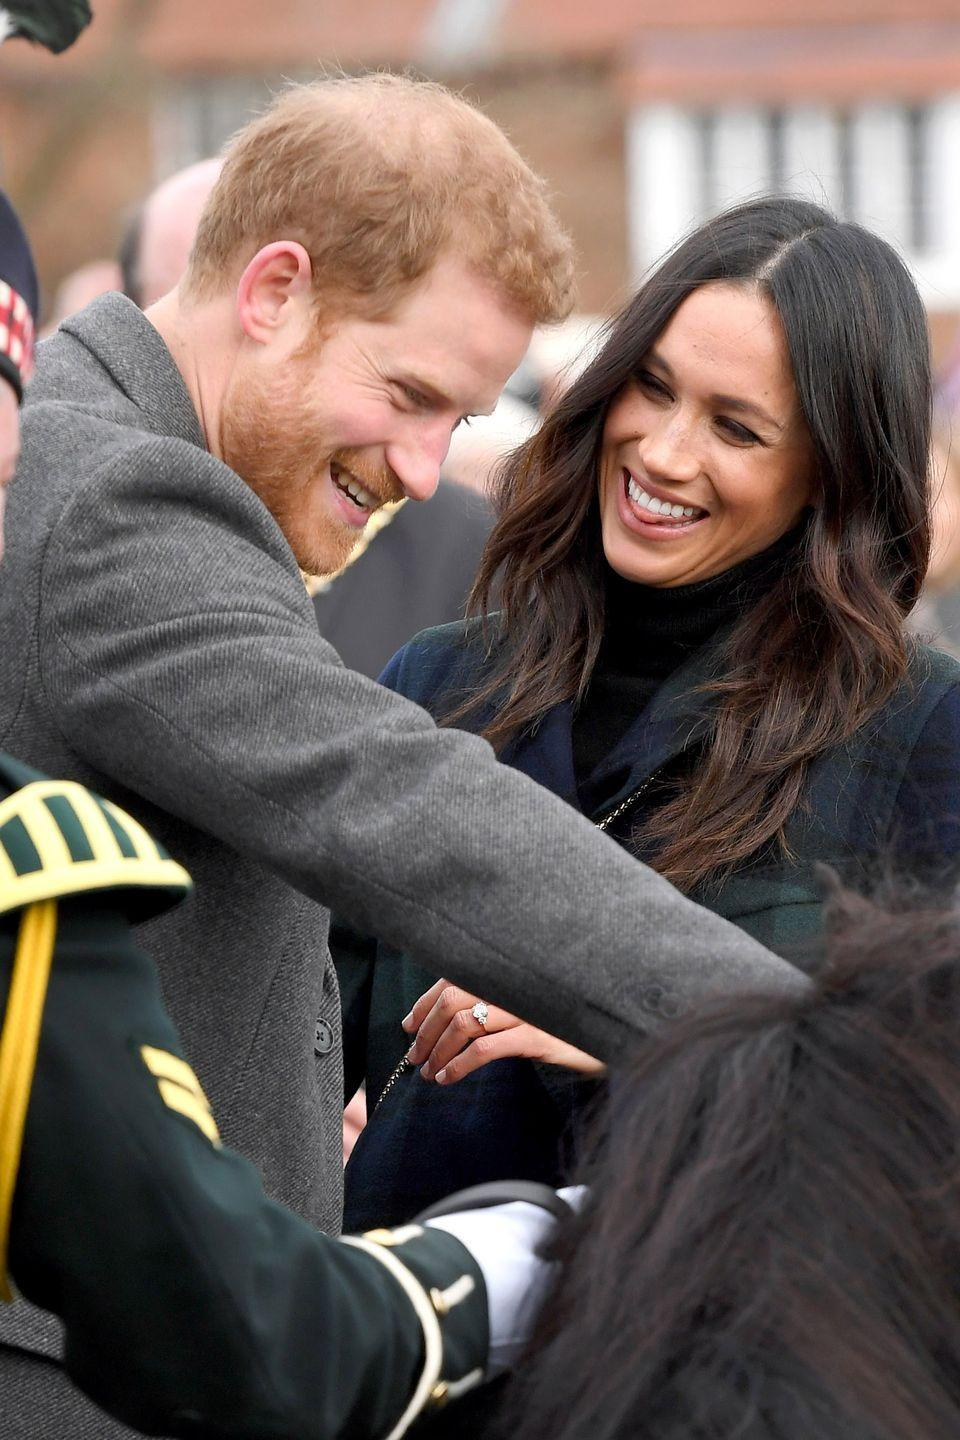 <p>While in Scotland, the pair appeared at the Edinburgh Castle, with Harry doing something hilarious to make the former <em>Suits</em> actress stick her tongue out in laughter.</p>